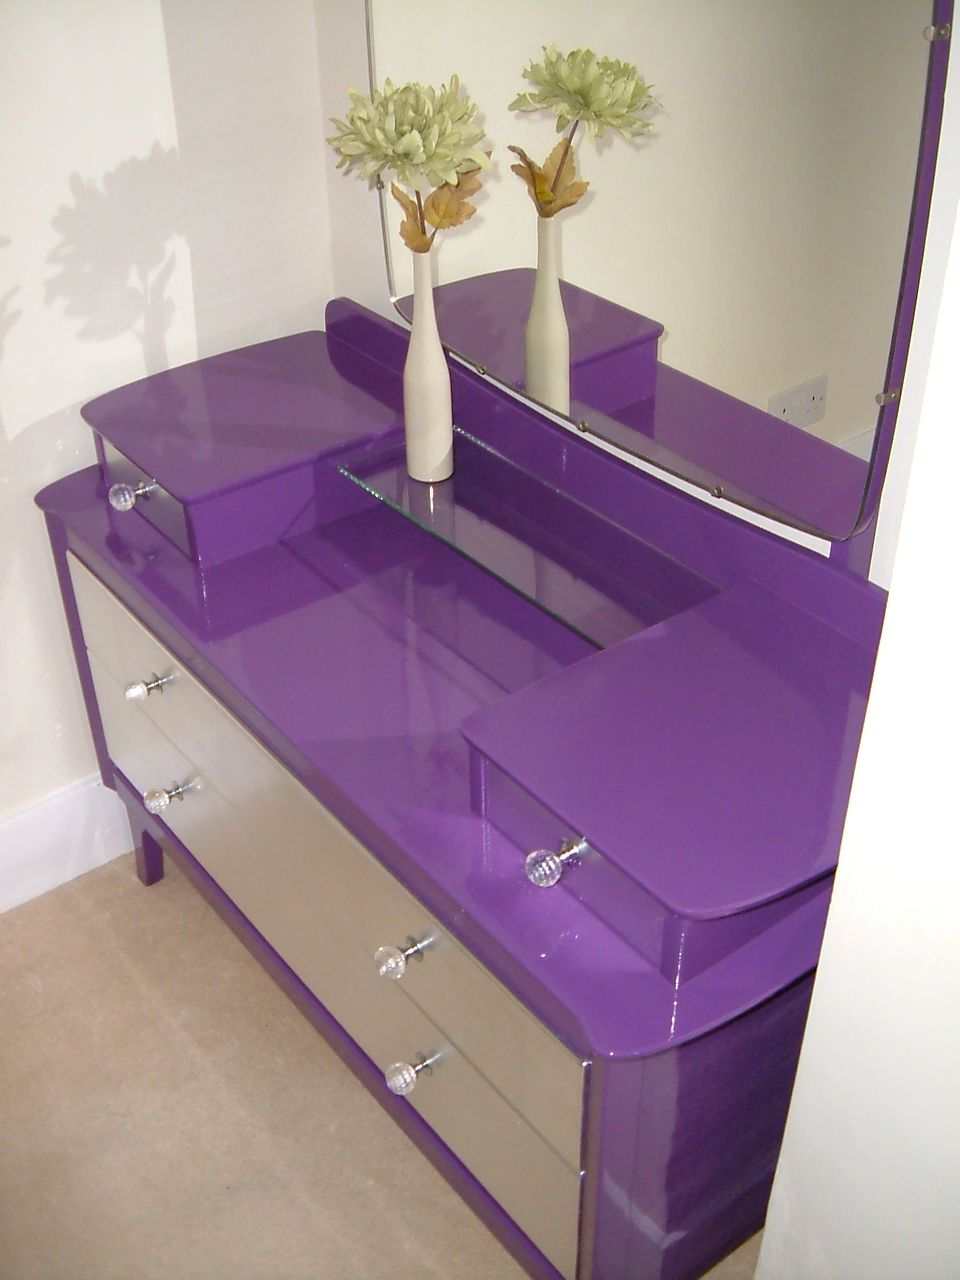 sale retailer c7b4d 5fc5f 1959 Vintage Dressing Table made by 'Lebus' and refinished ...